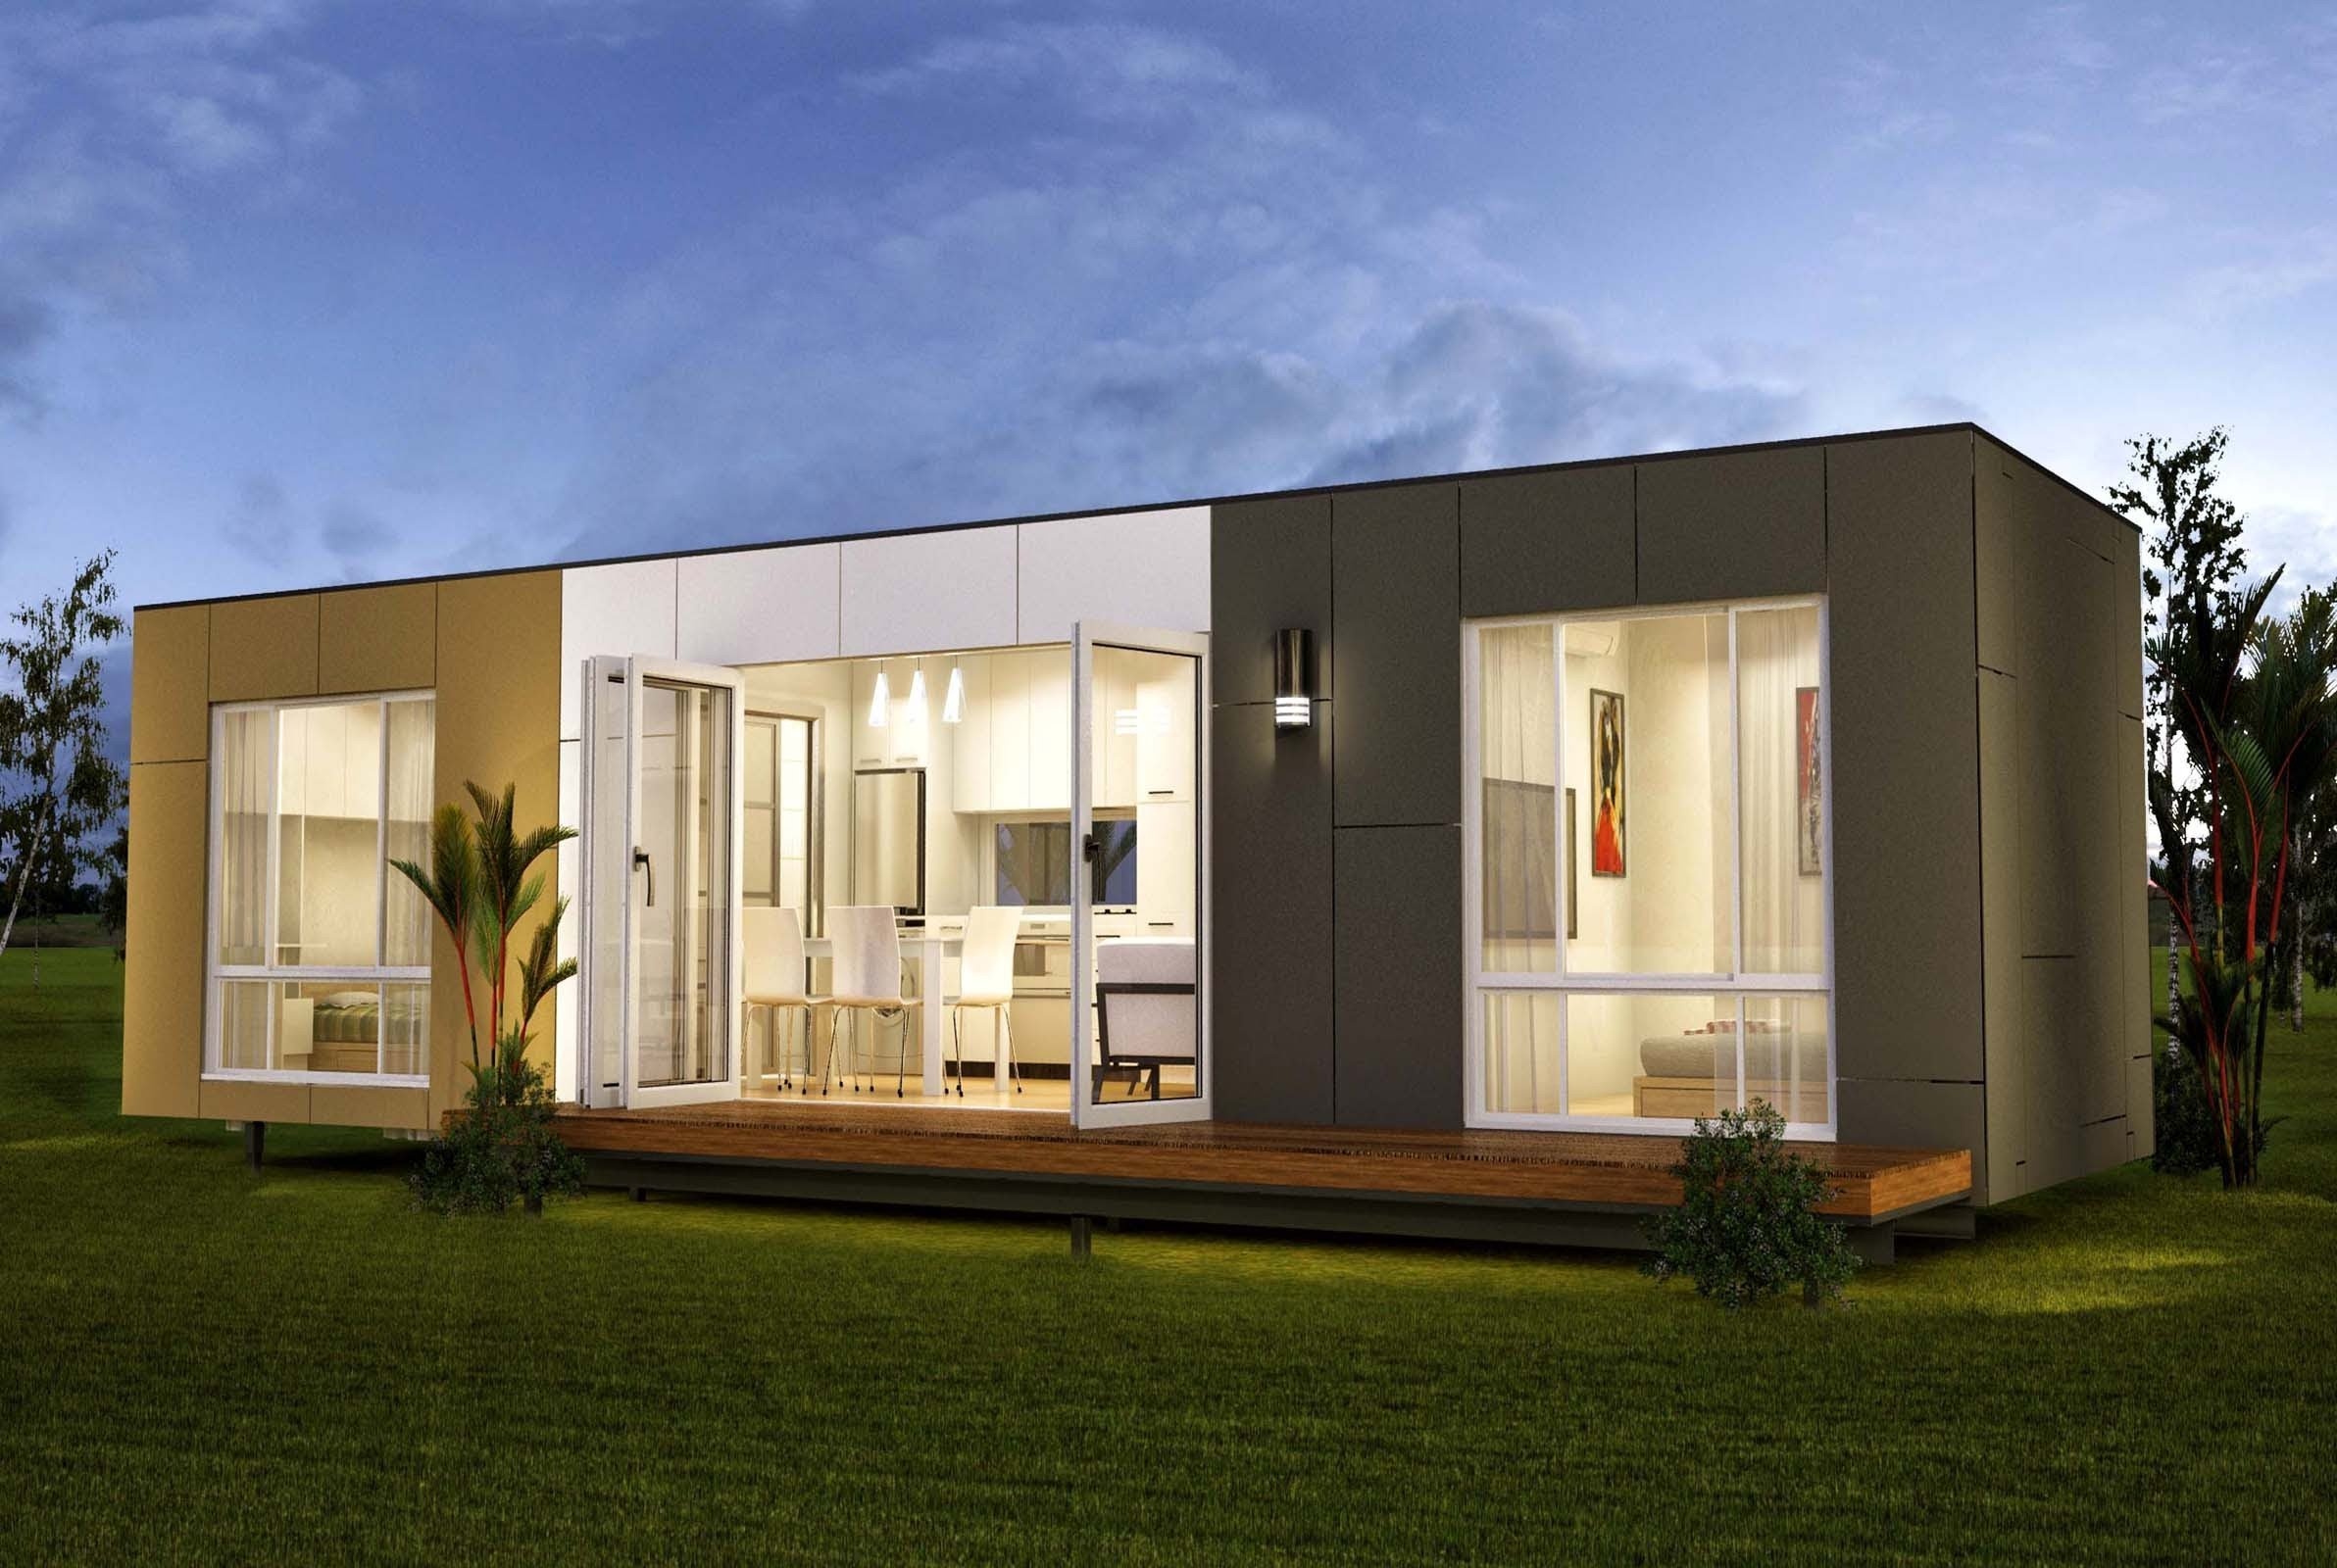 Best Kitchen Gallery: Prefab Container Homes Nz » Design And Ideas of Pre Built Container Homes  on rachelxblog.com